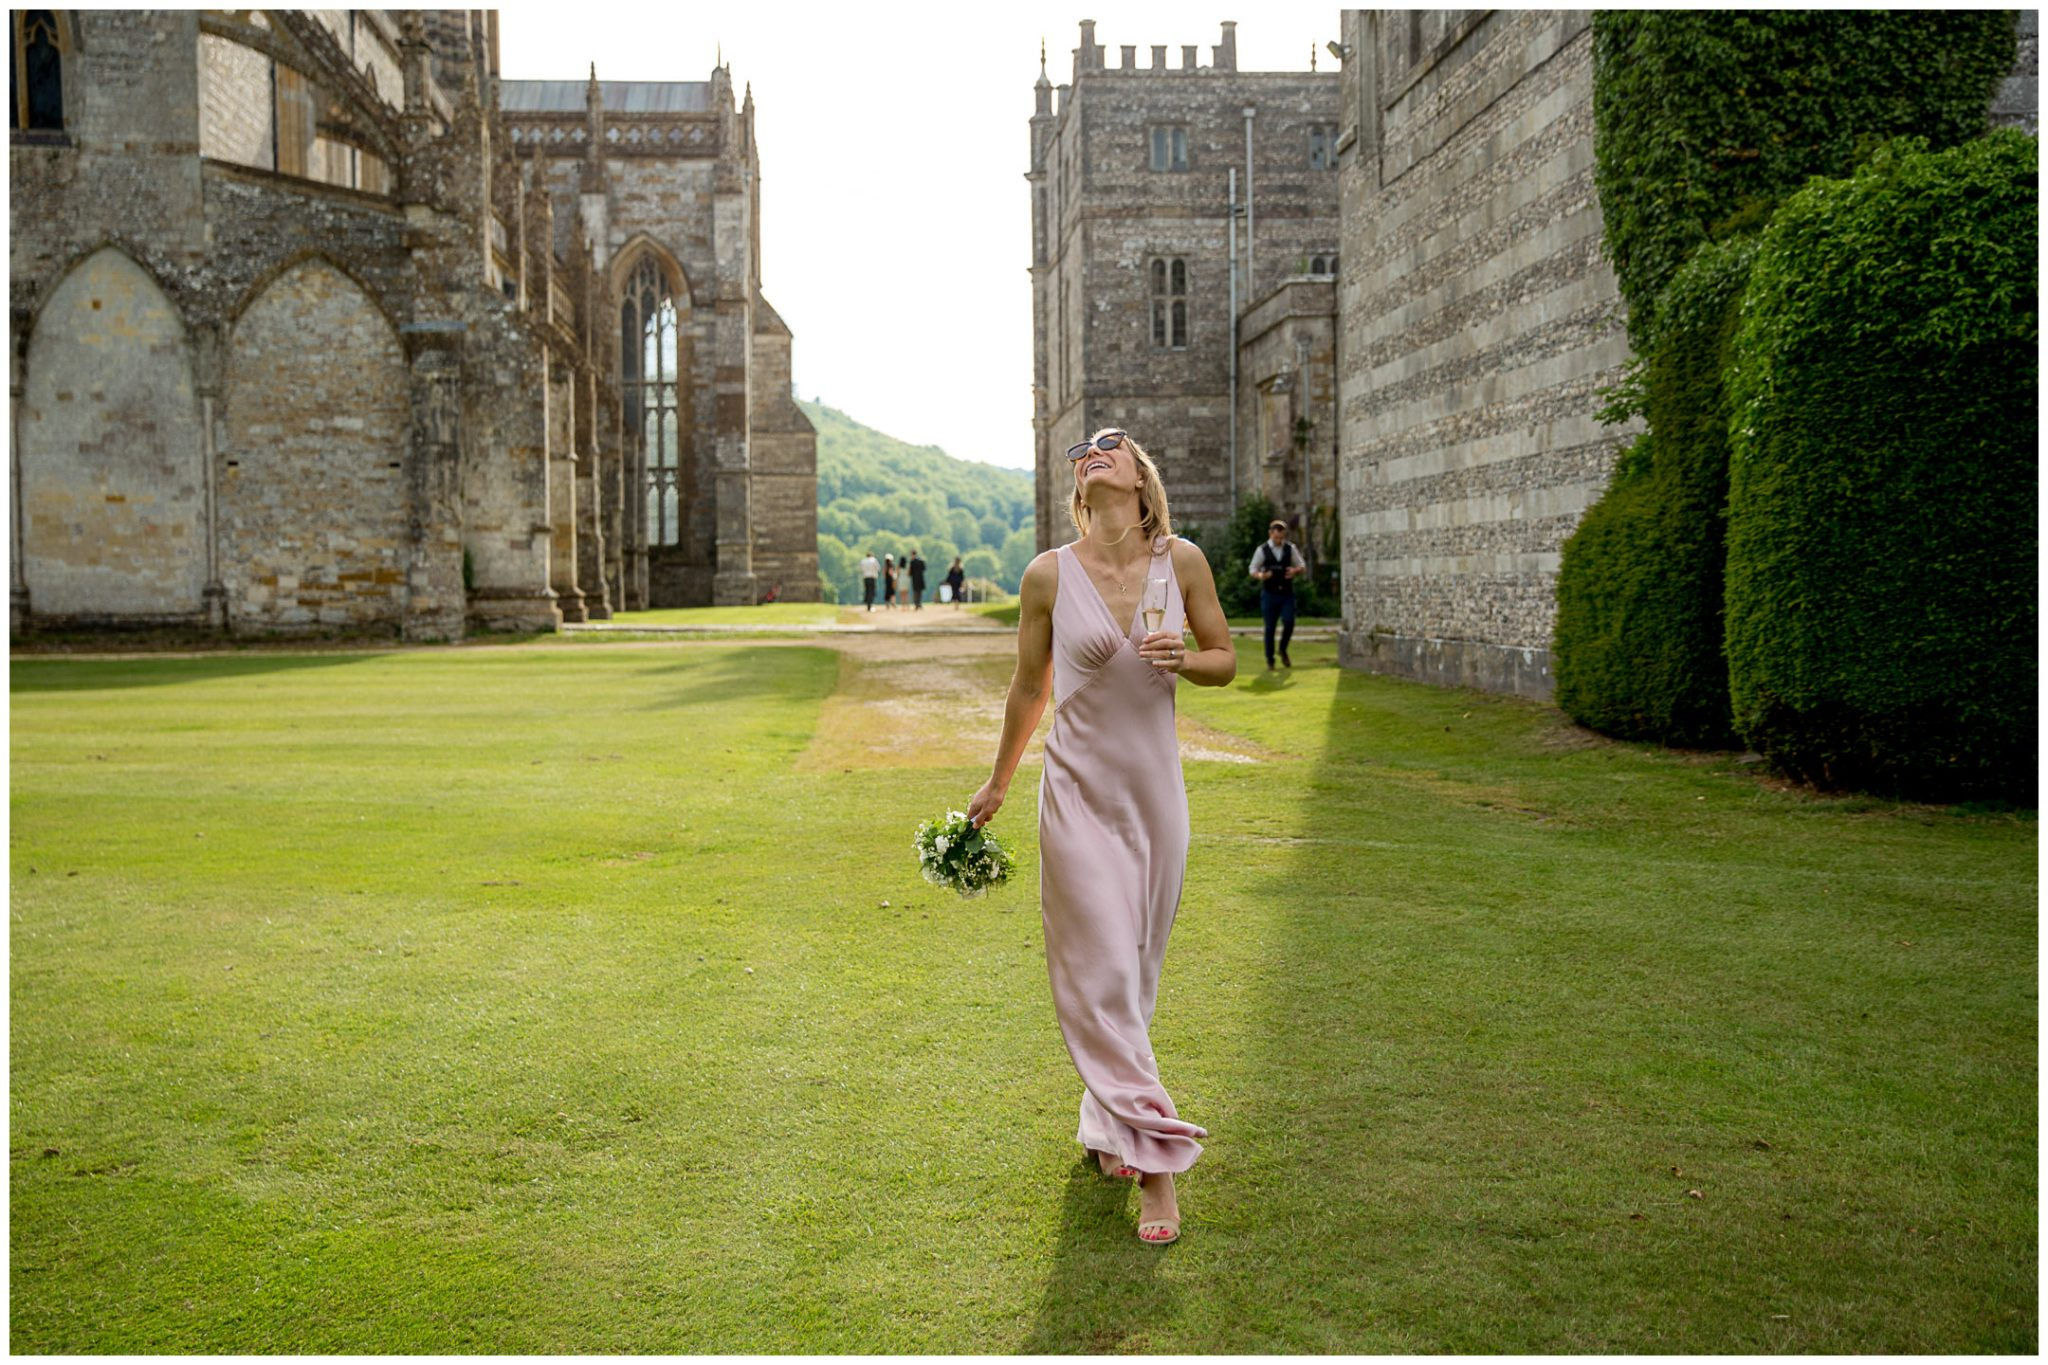 A bridemsiad walks through the school and Abbey grounds in the summer sunshine